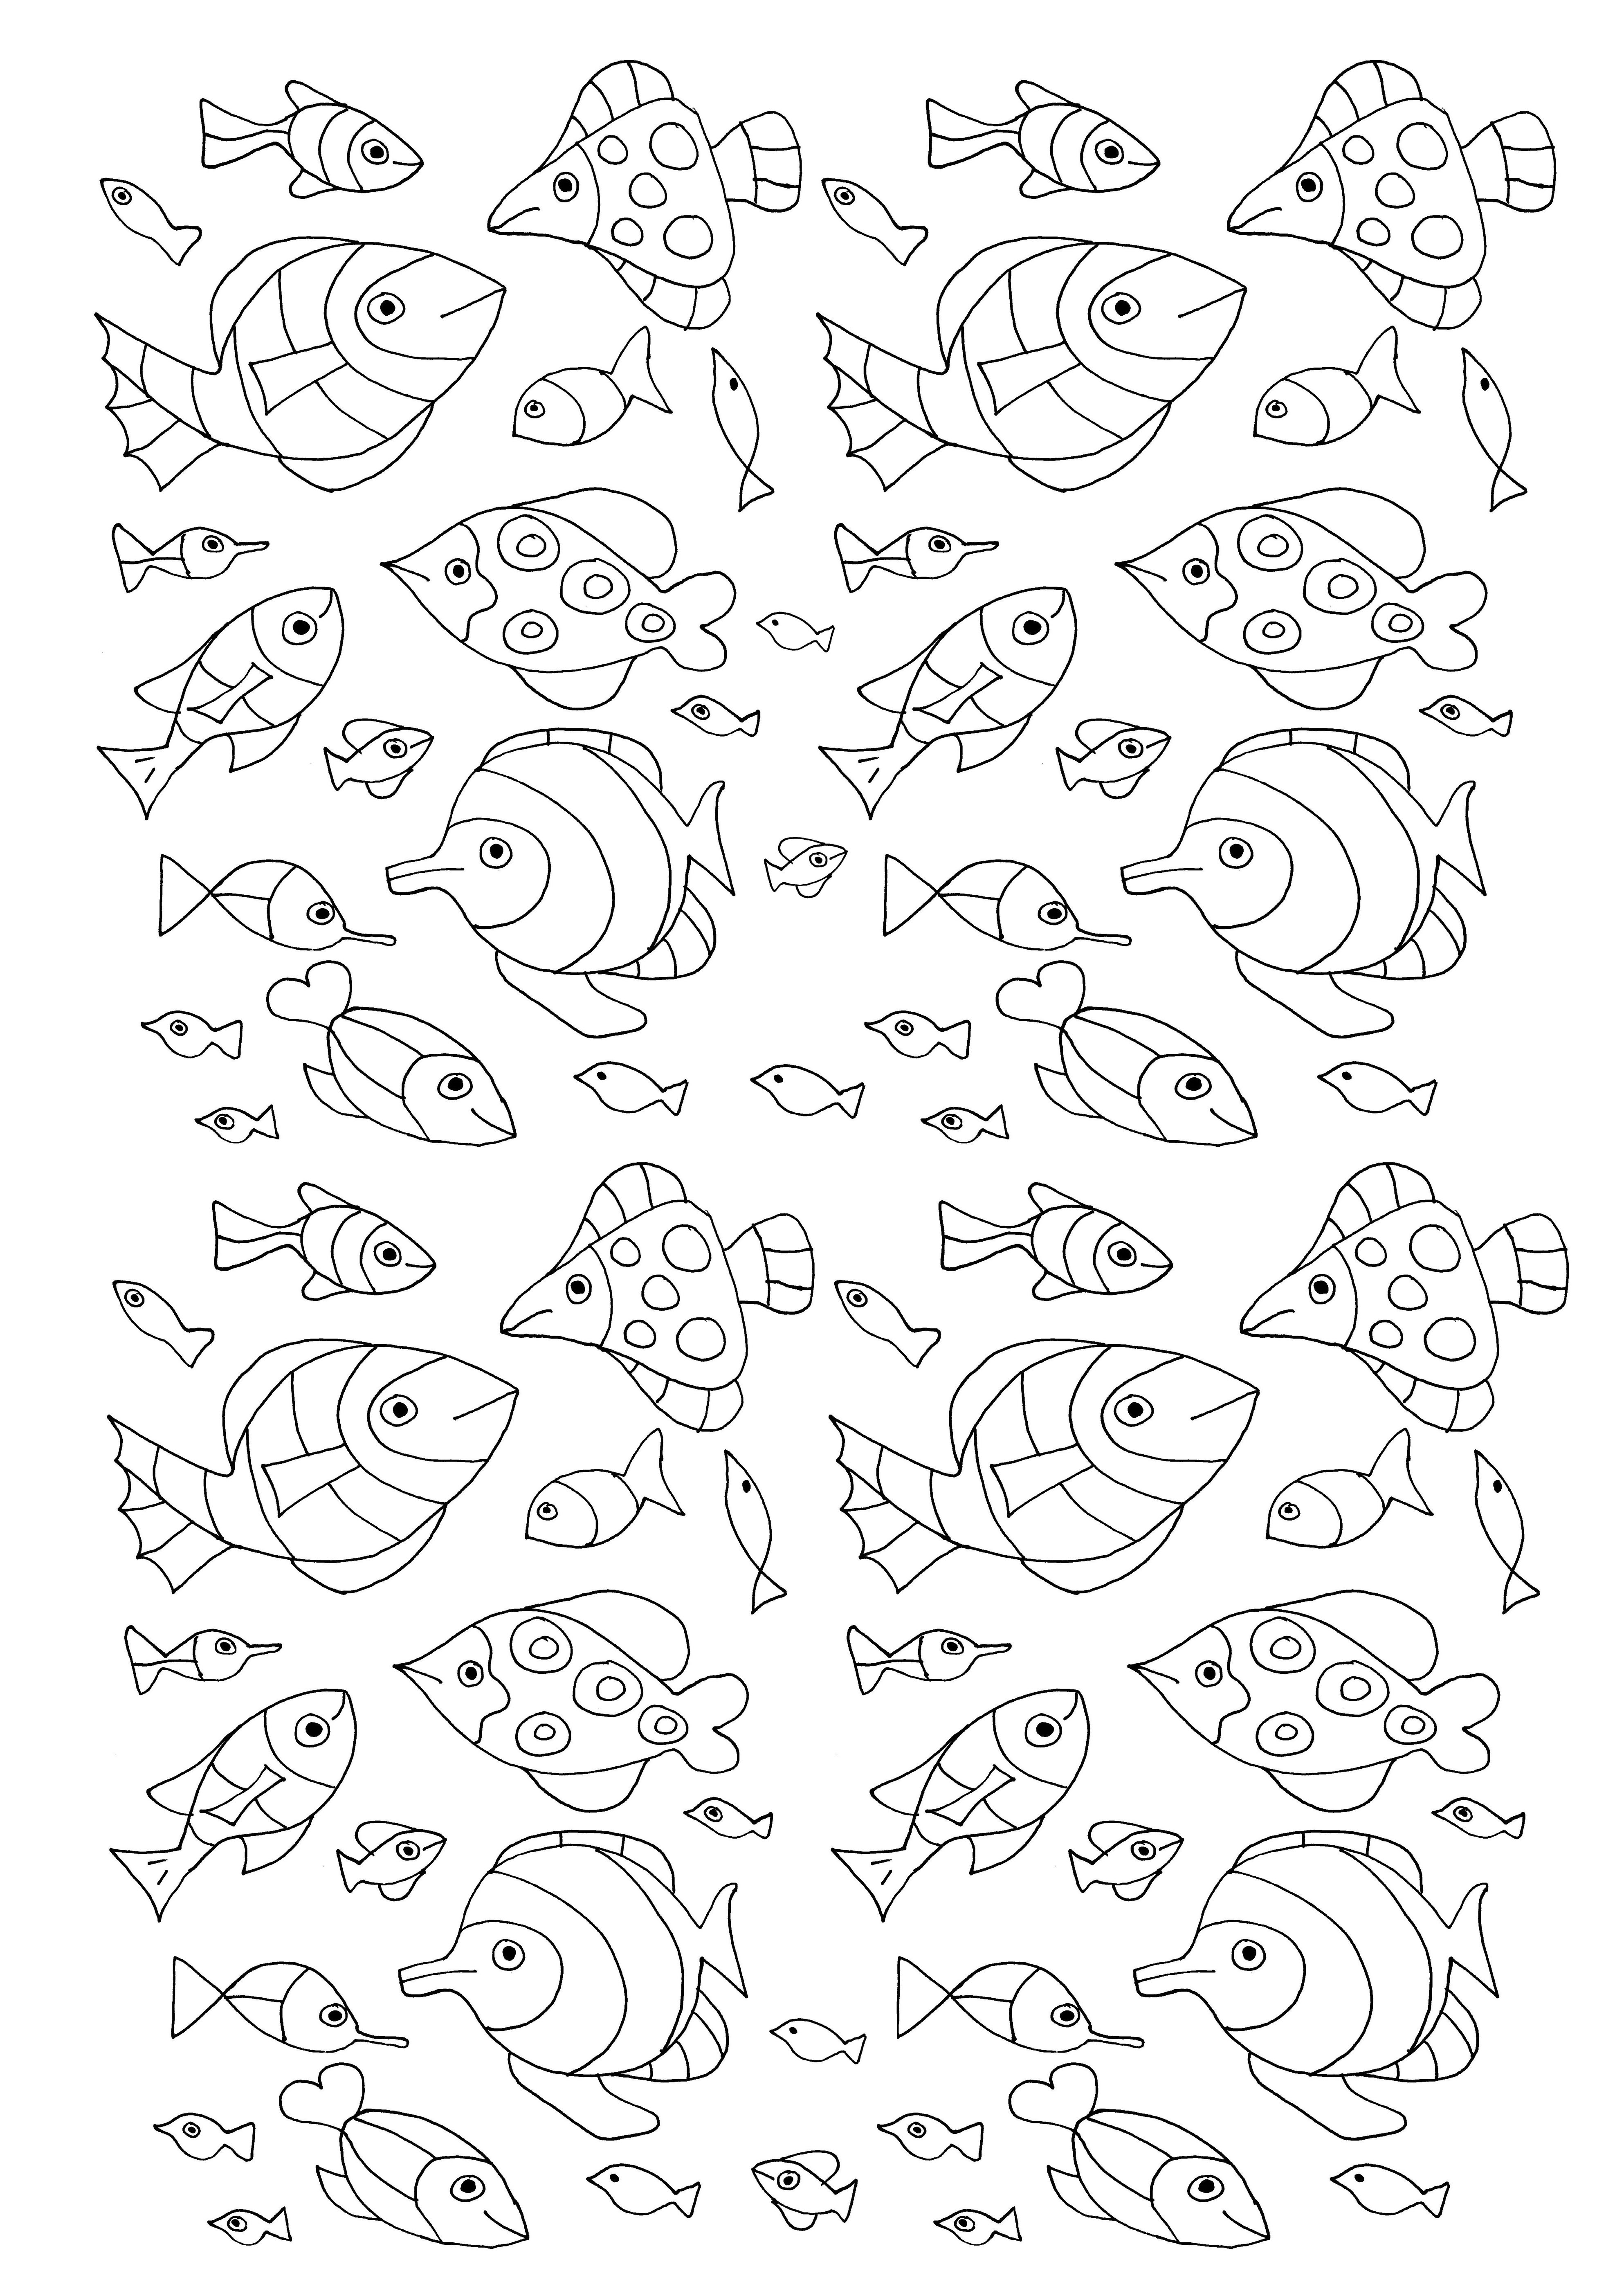 Pisces coloring page to print and color for free